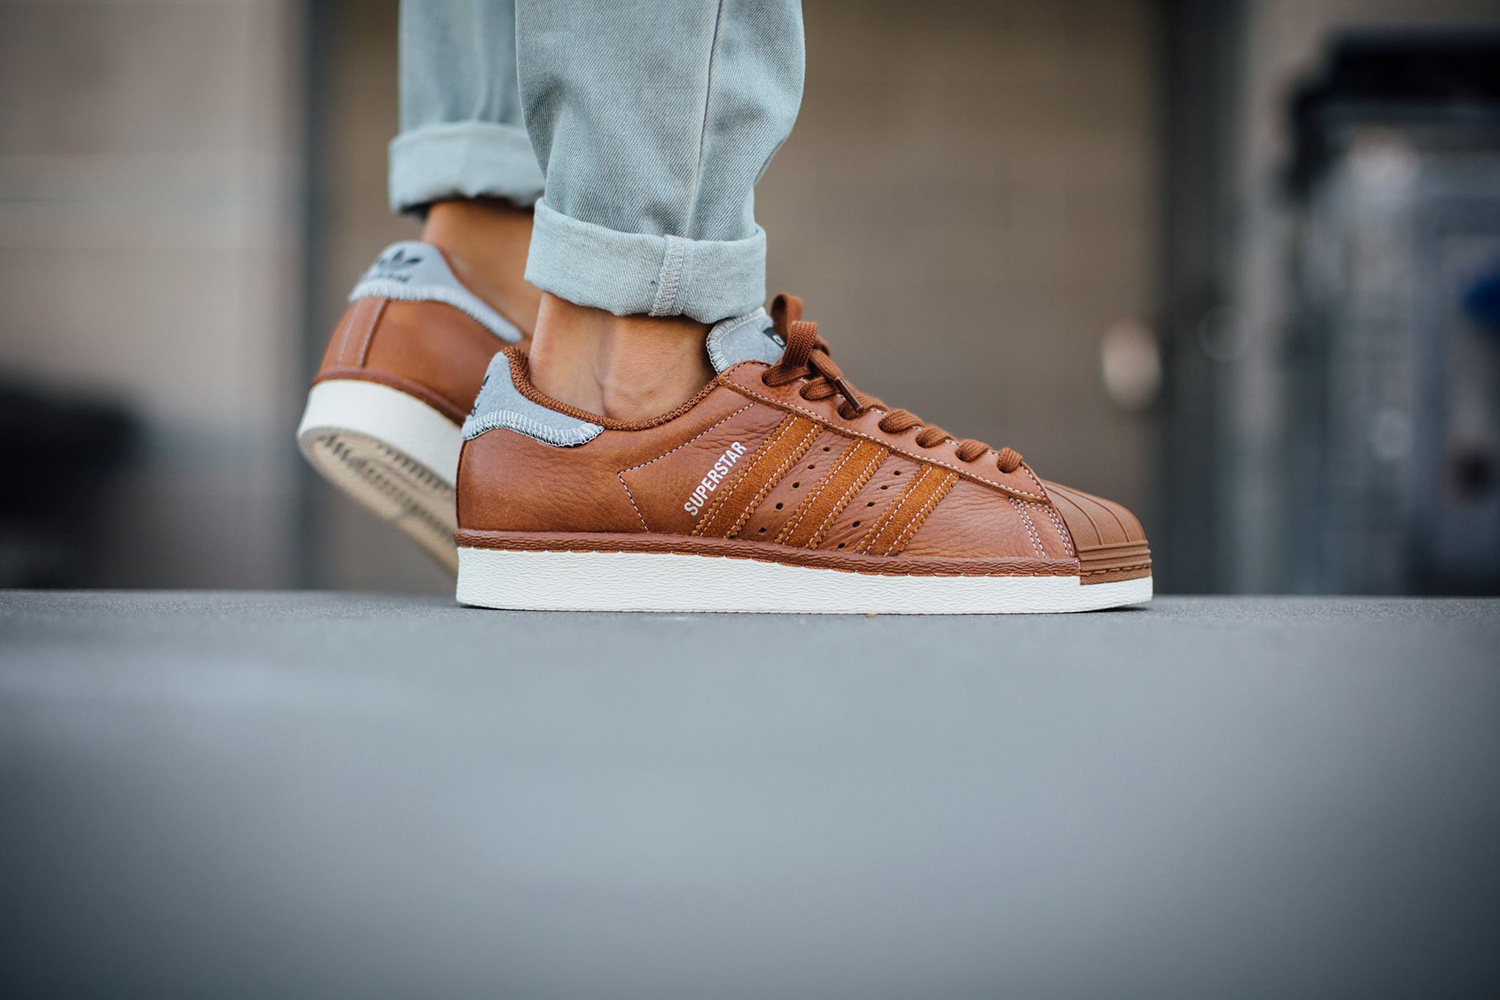 Originals Superstar A The Take Look At Clean Adidas 80s bvfymI67Yg